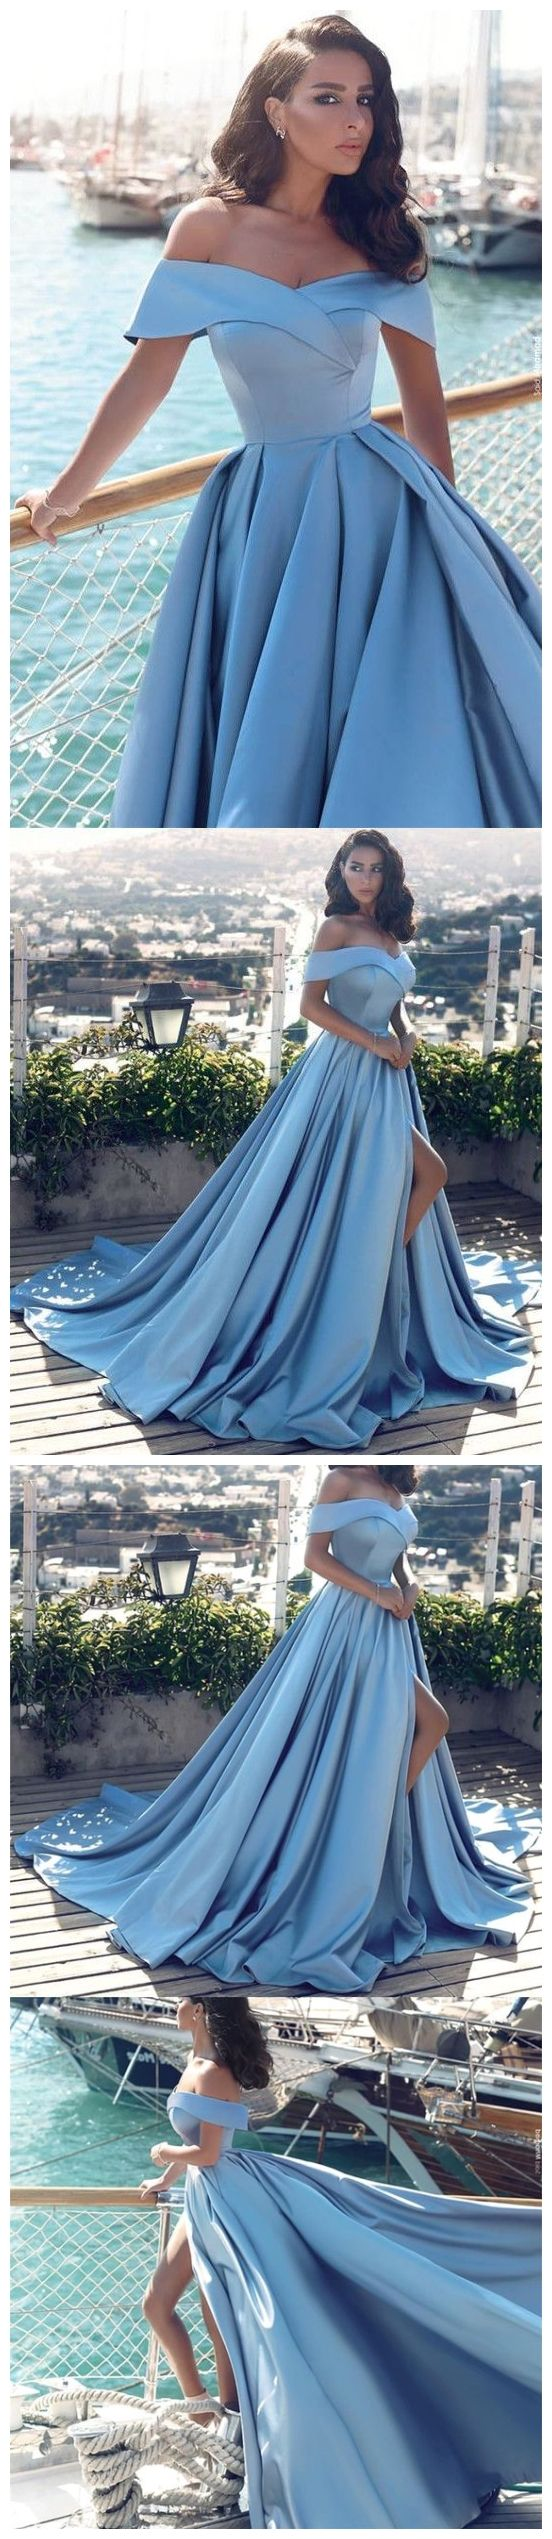 Off the shoulder maroon prom dresses simple cheap long prom dresses